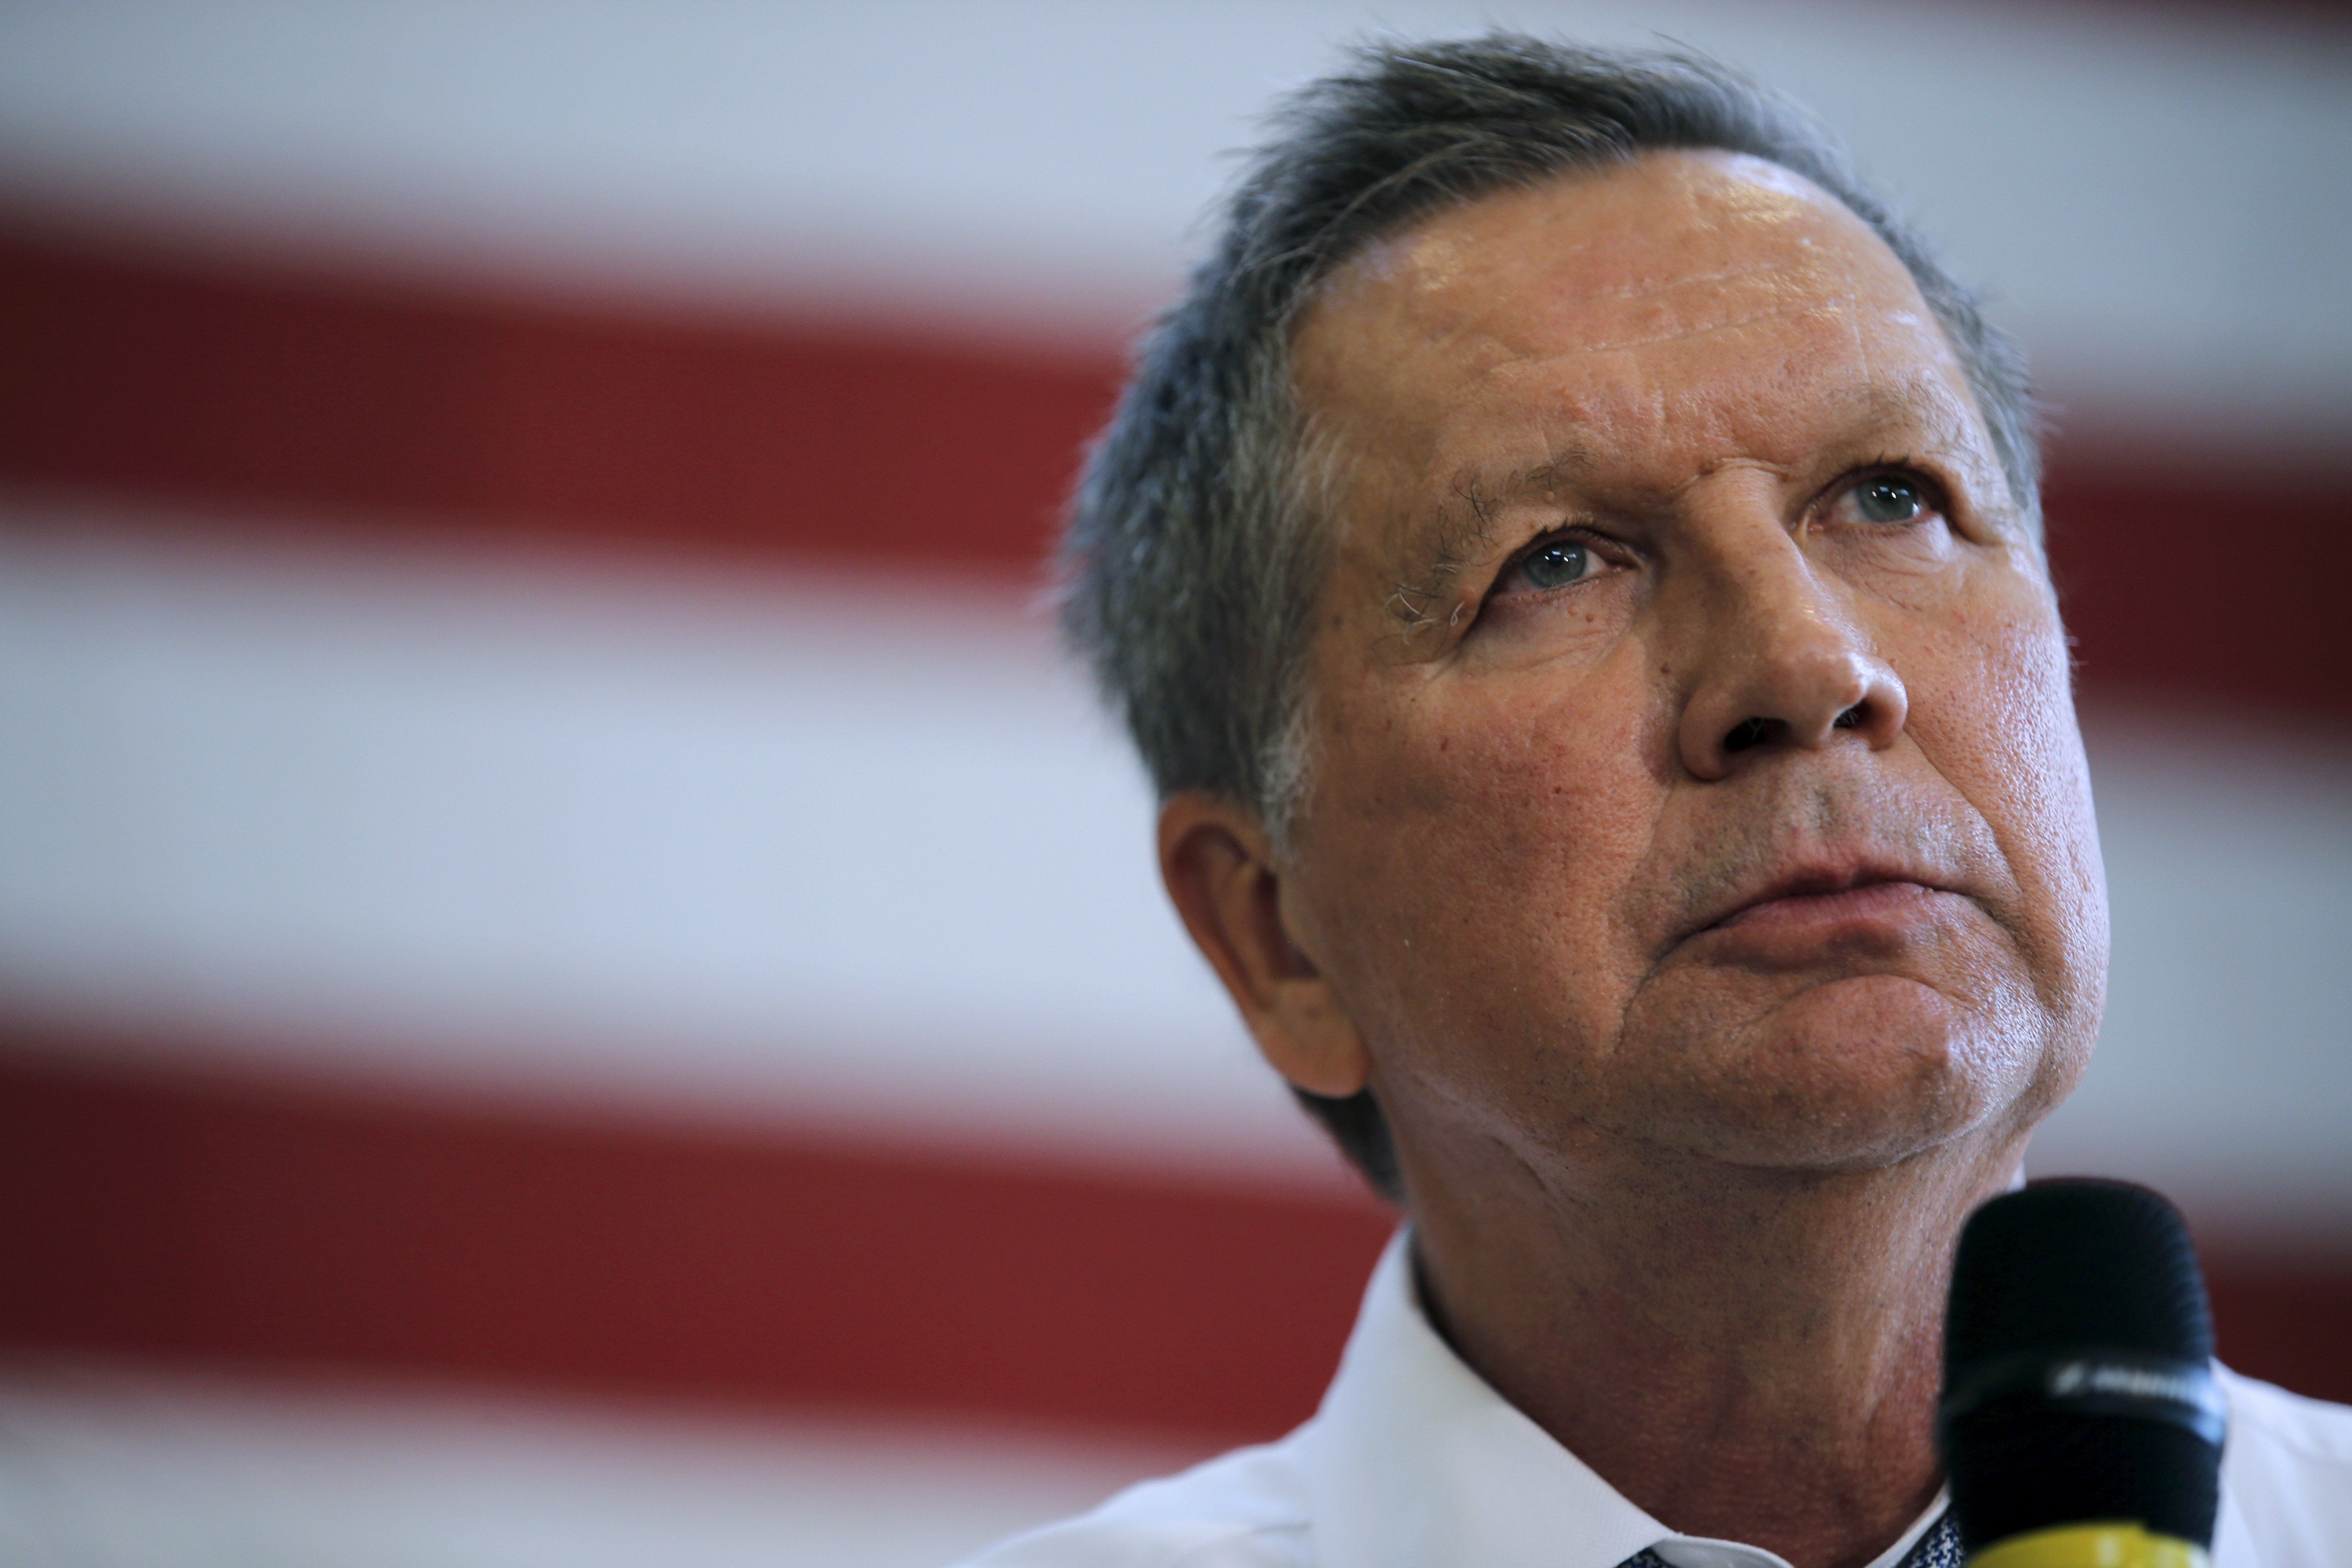 Ohio Gov. John Kasich (R) and the Republican-majority legislature enacted a Medicaid reform law this year.